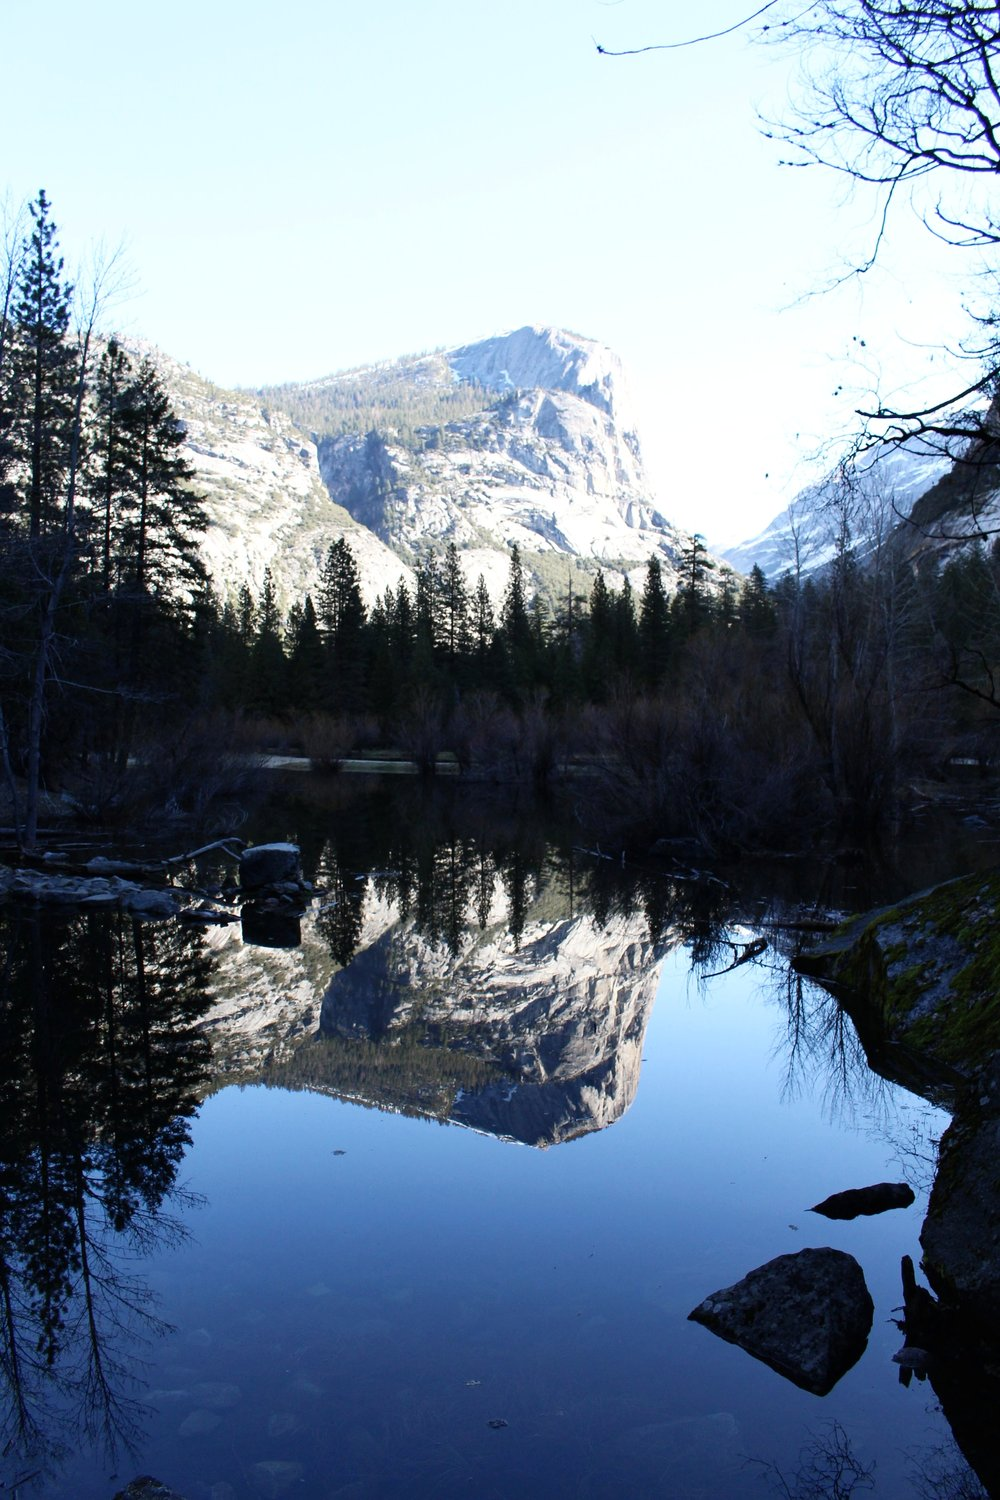 Mirror Lake . This spot is probably tied for first with Tunnel View as the most beautiful place I've seen in Yosemite. It's so peaceful and, for lack of a better word, reflective. Can you spot tiny Grace and Casper on the left side of the photo below?